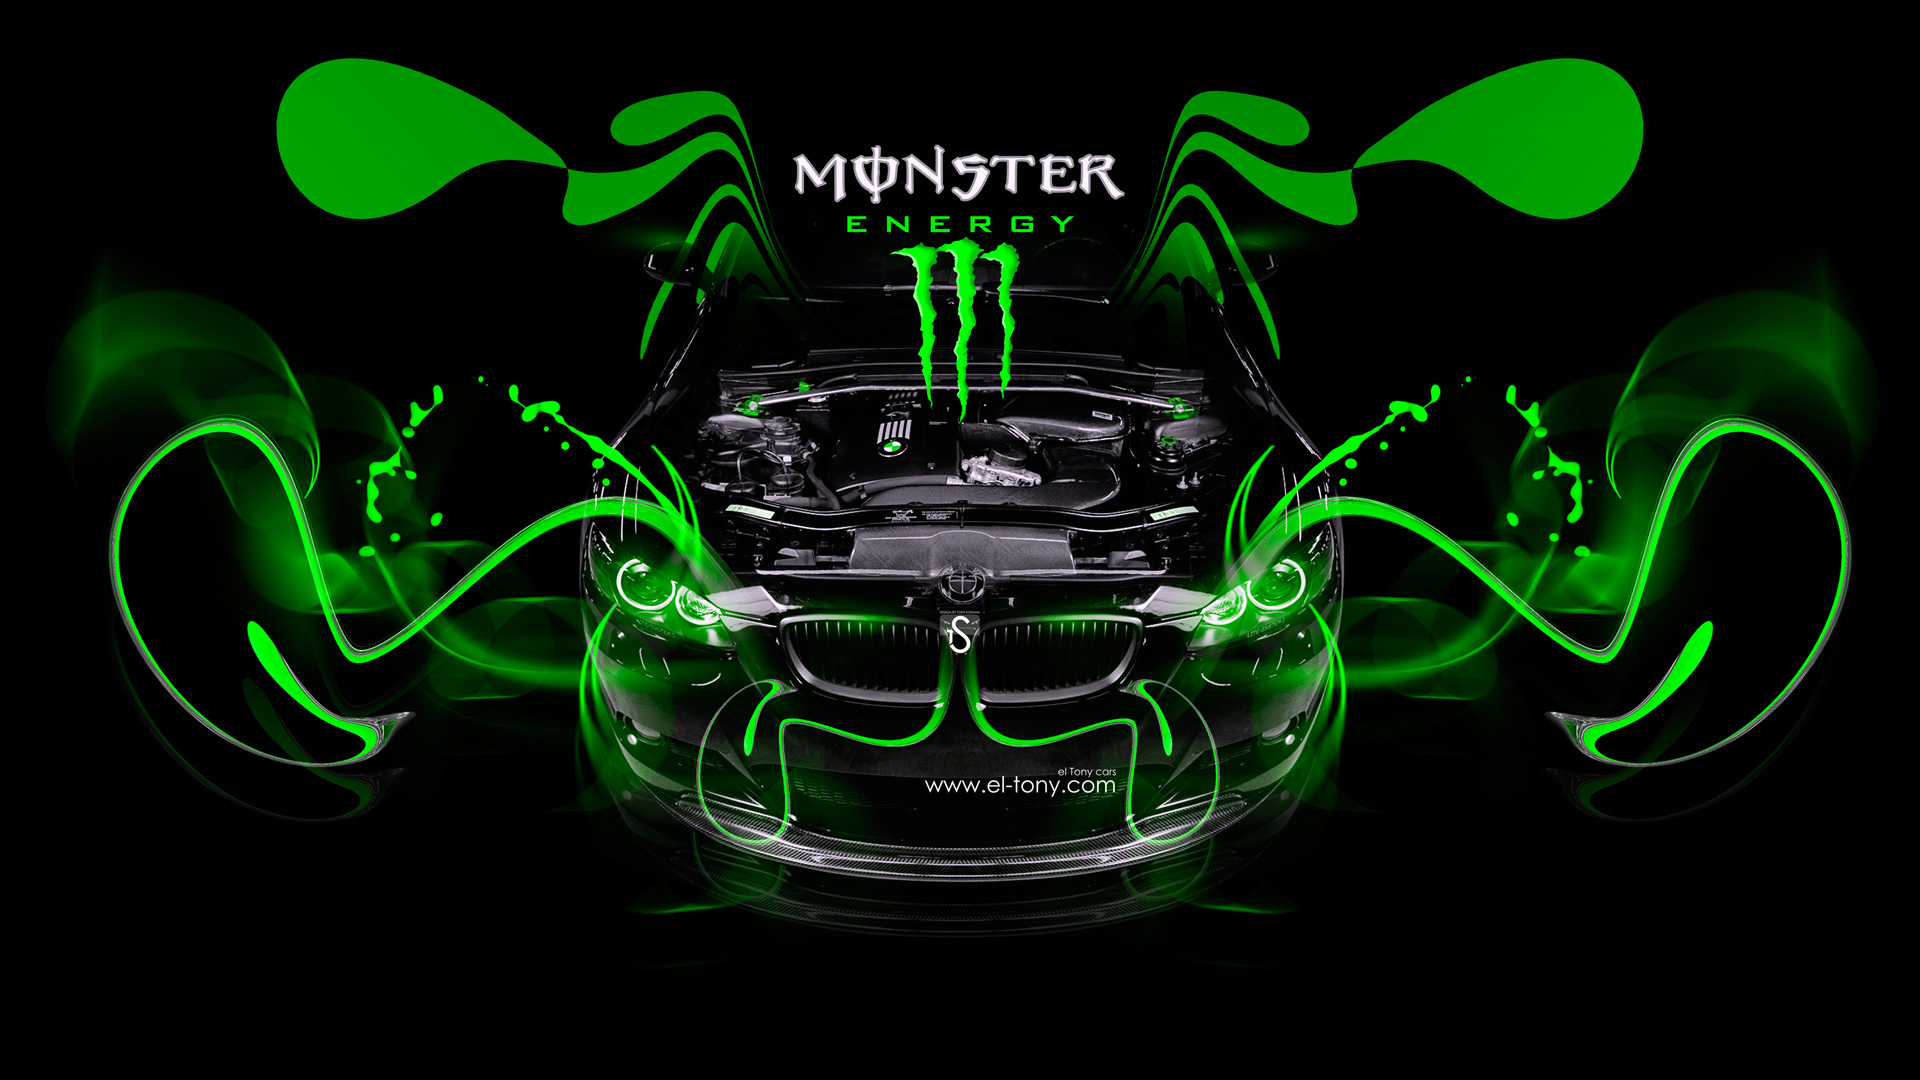 Monster Energy Bmw M3 Engine Open Car 2014 El Tony